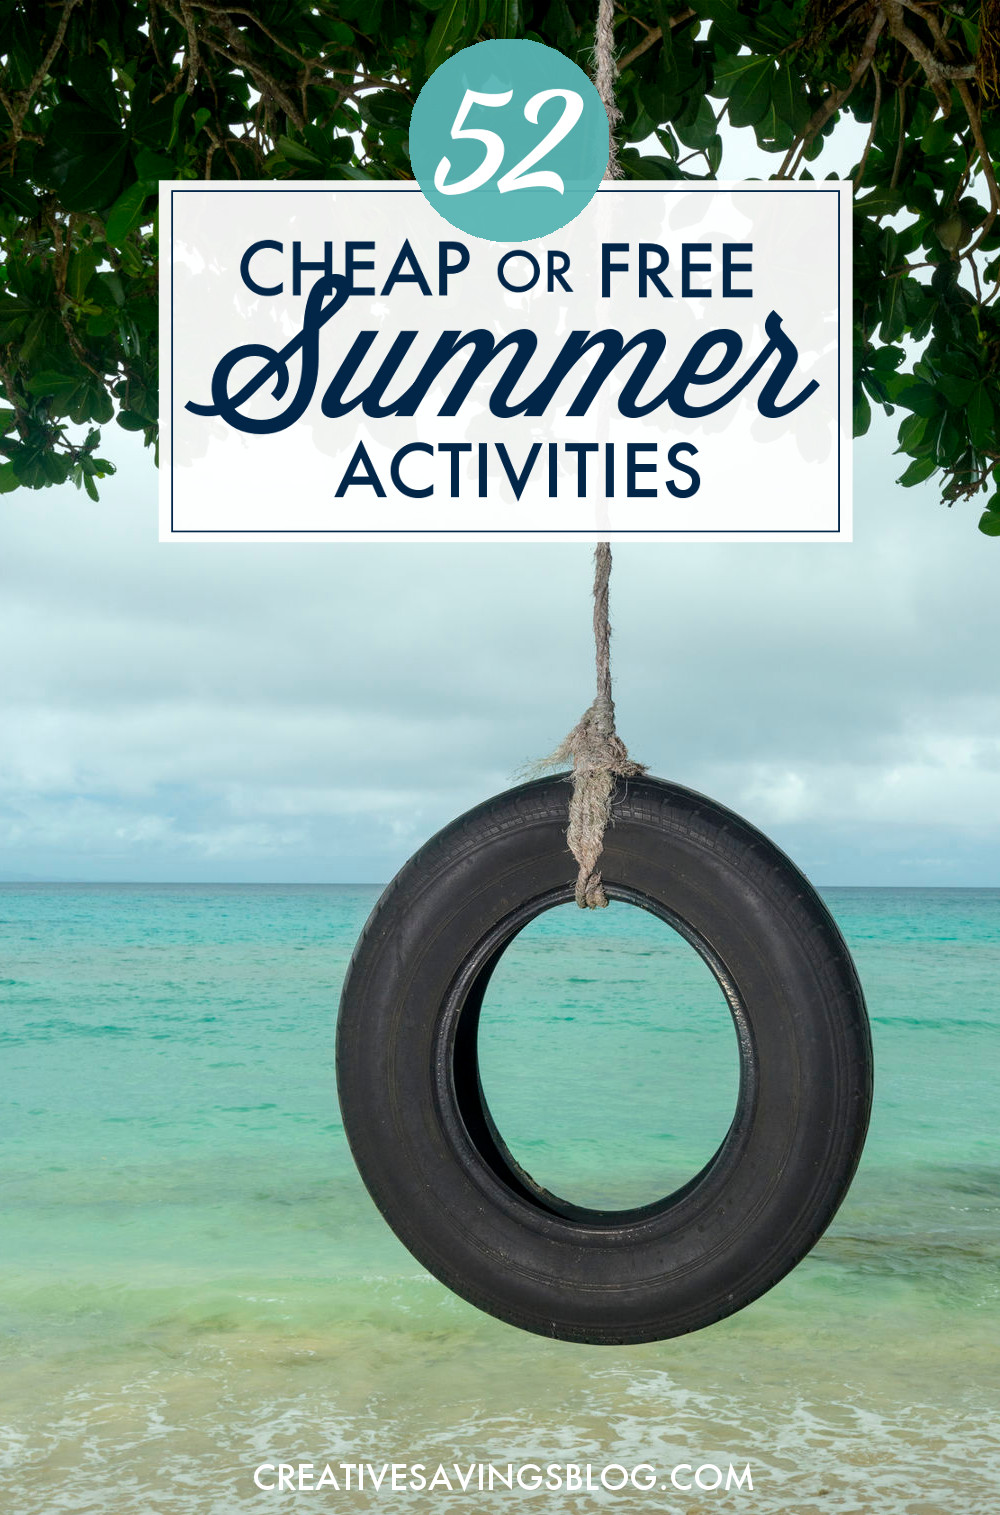 The dog days of Summer are finally here, and while relaxation is a definite must, you'll also want to plan a few activities too. These 52 Cheap or Free Summer Activities for kids and adults don't cost much at all, but leave LOTS of room for imagination and pure family fun! Includes a printable checklist to hang on your fridge so you'll never run out of ideas!